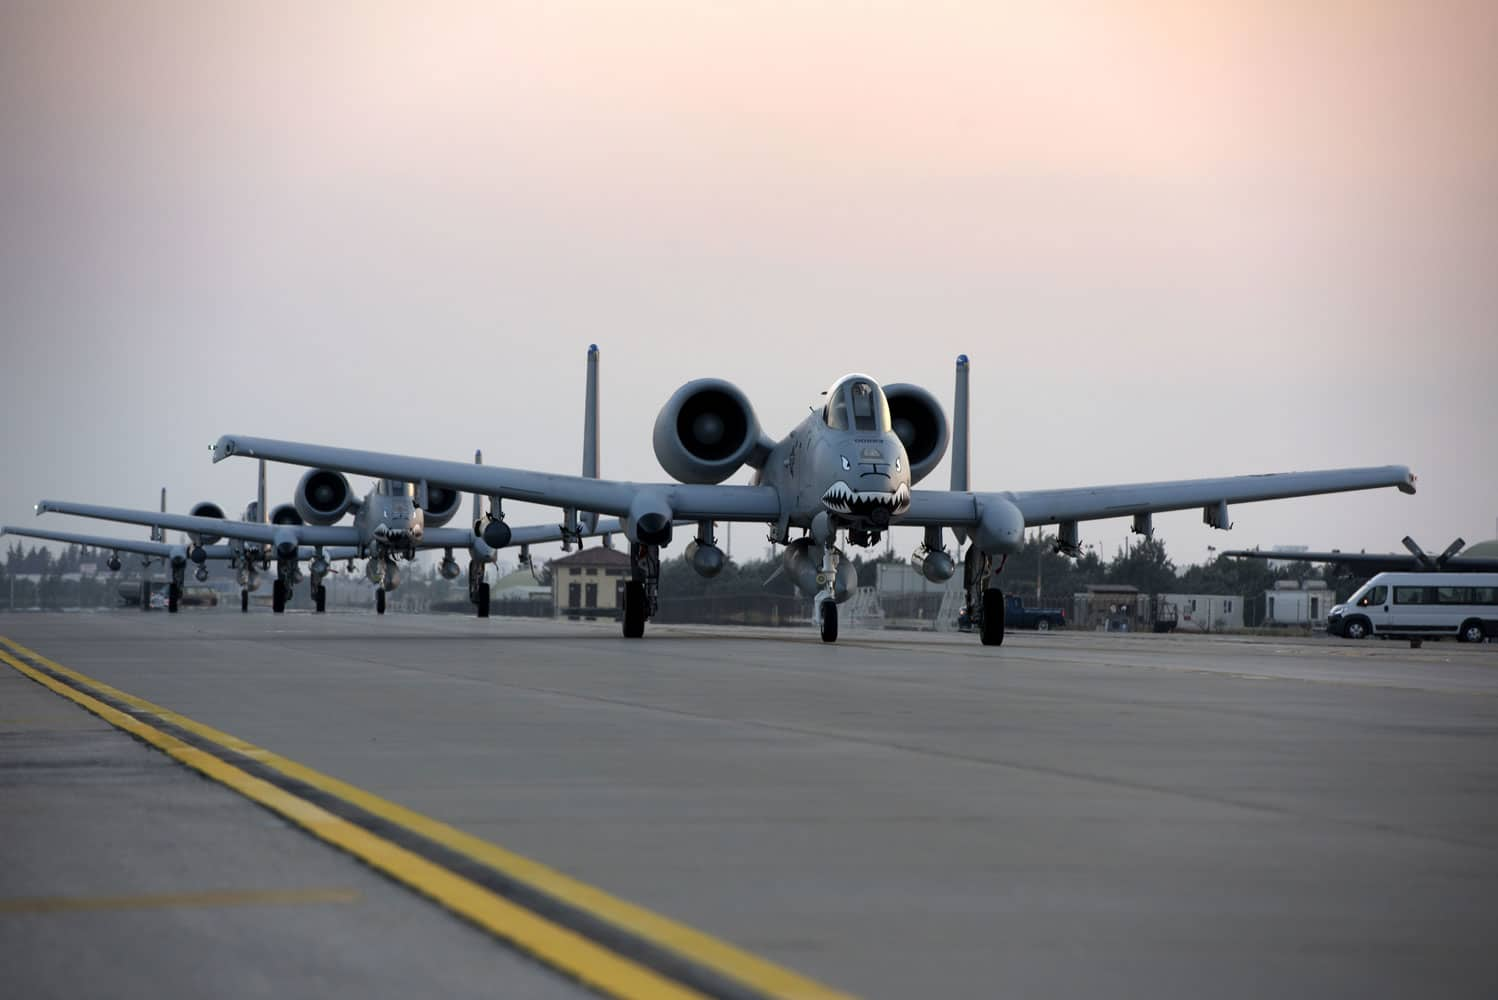 Three U.S. Air Force A-10 Thunderbolt II's taxi along the flight-line at Incirlik Air Base, Turkey.